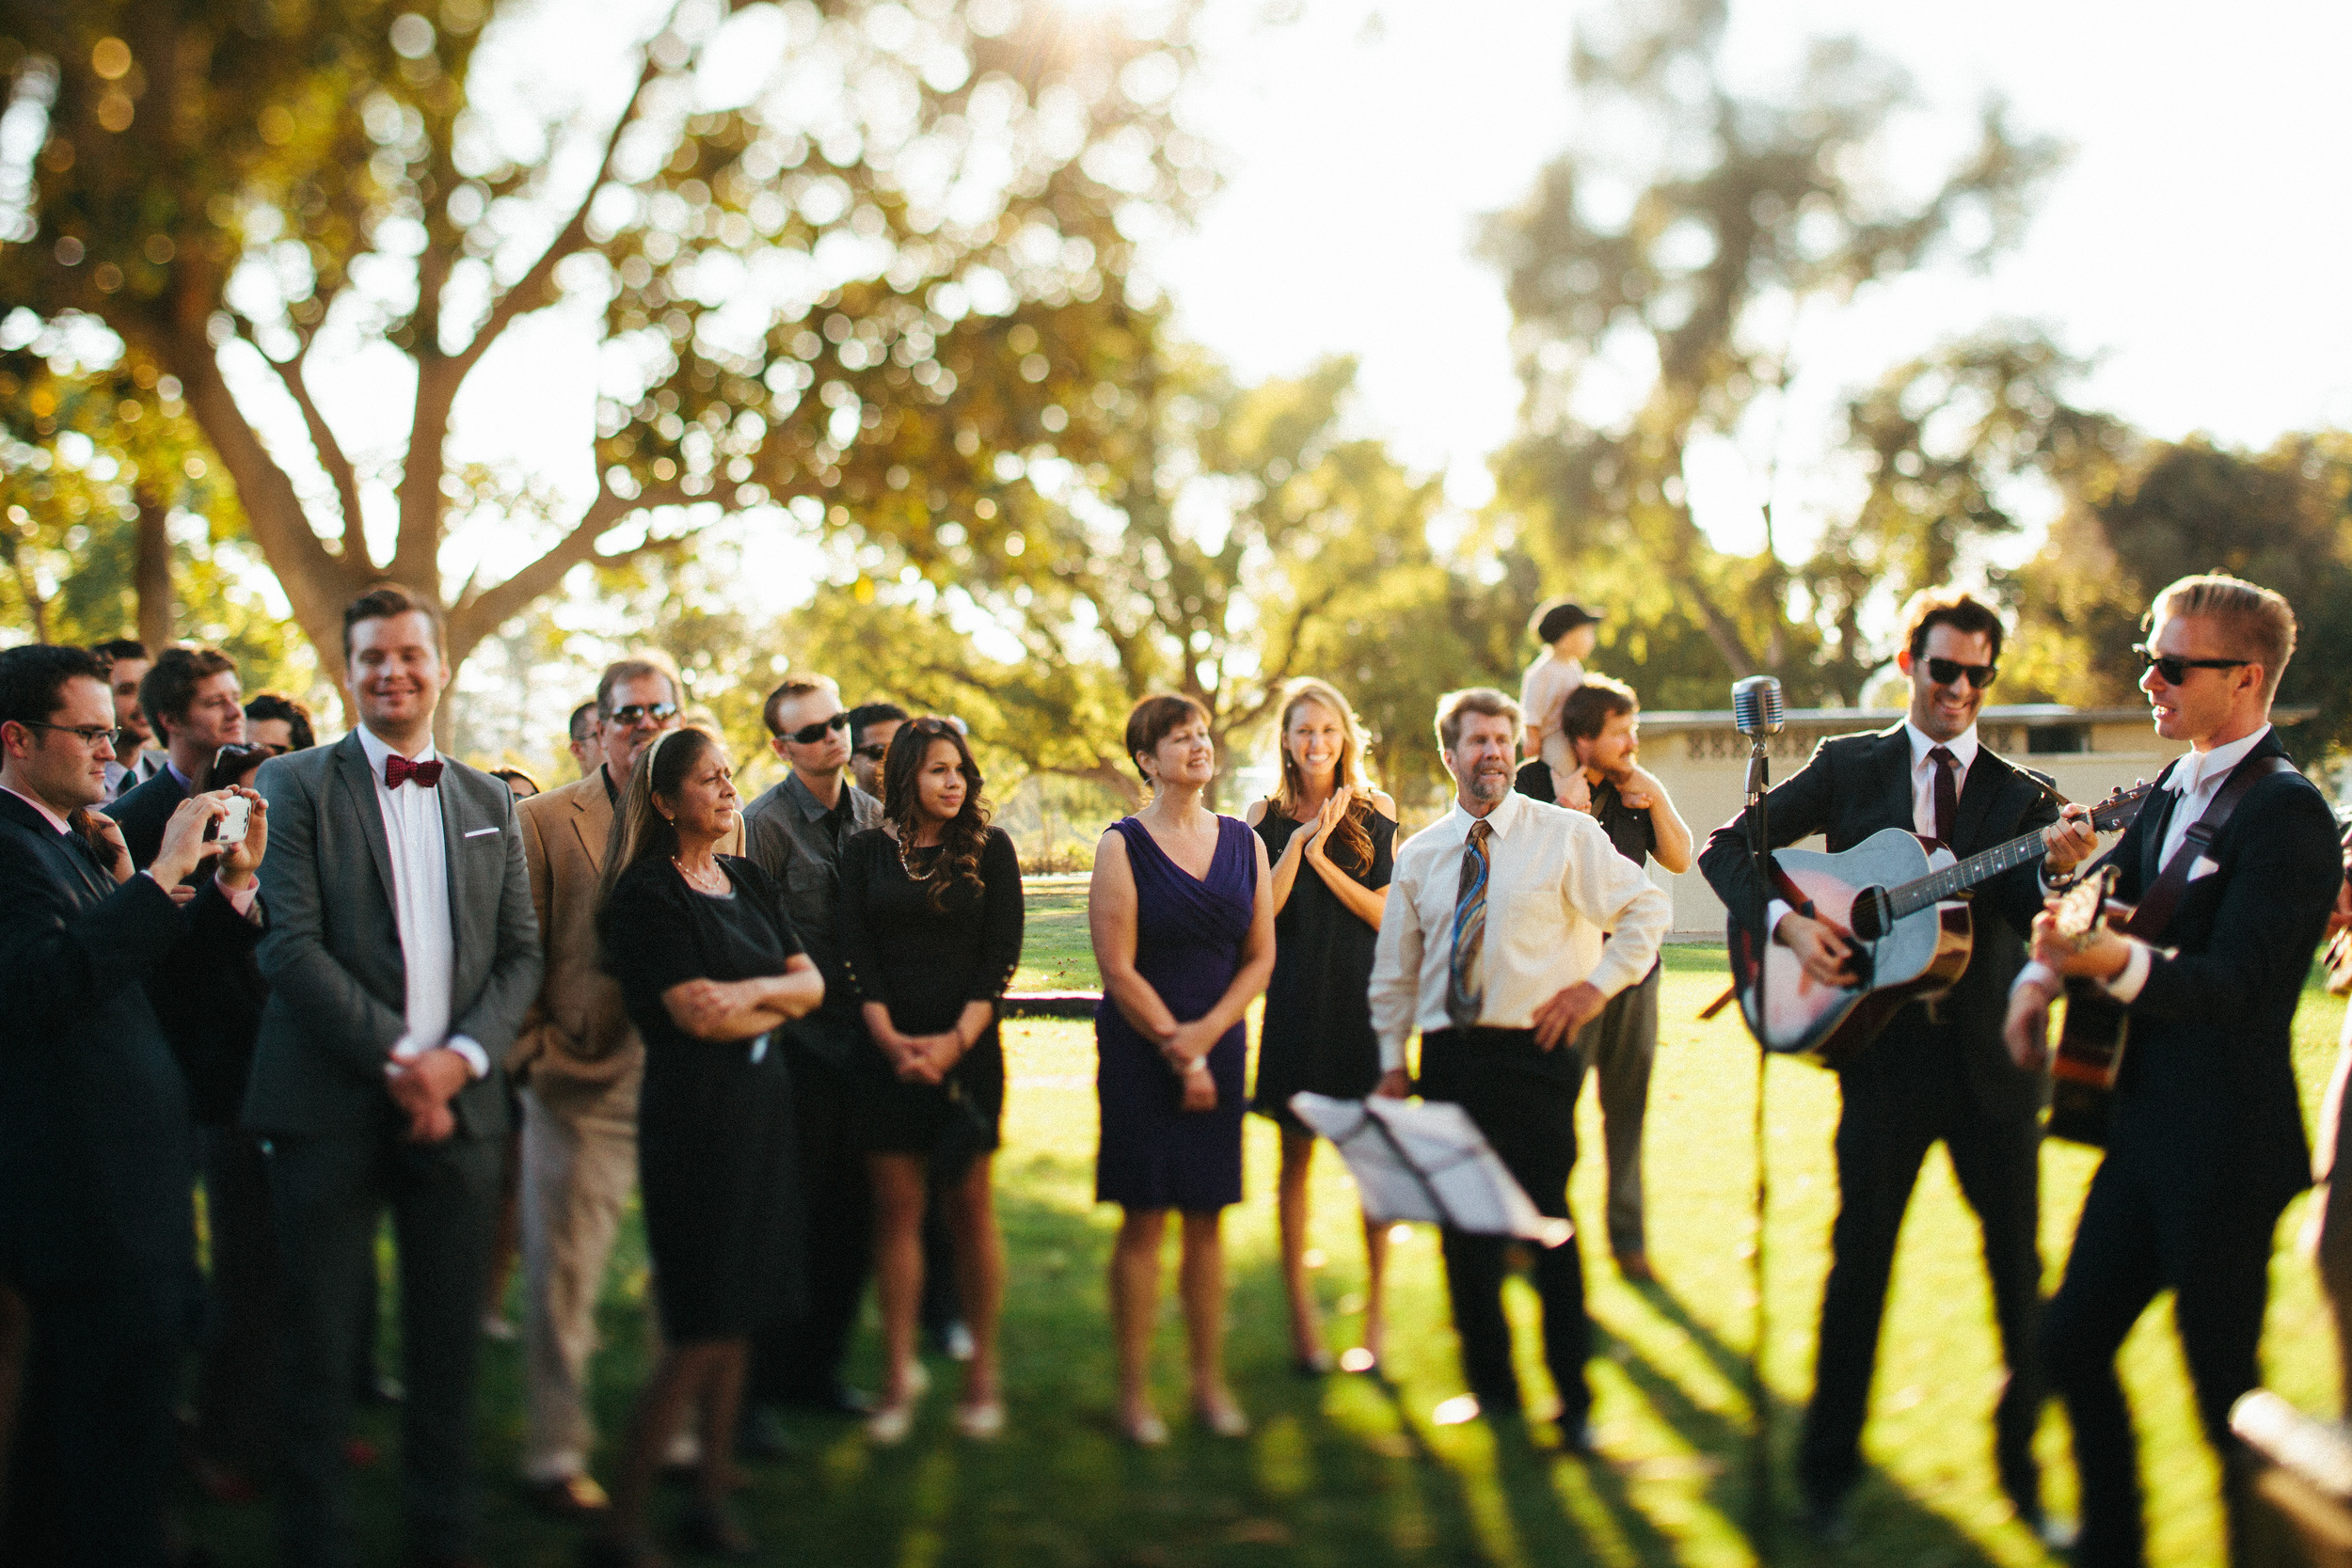 Paige-Newton-Wedding-Photography-San-Diego-Wedding-Band.jpg